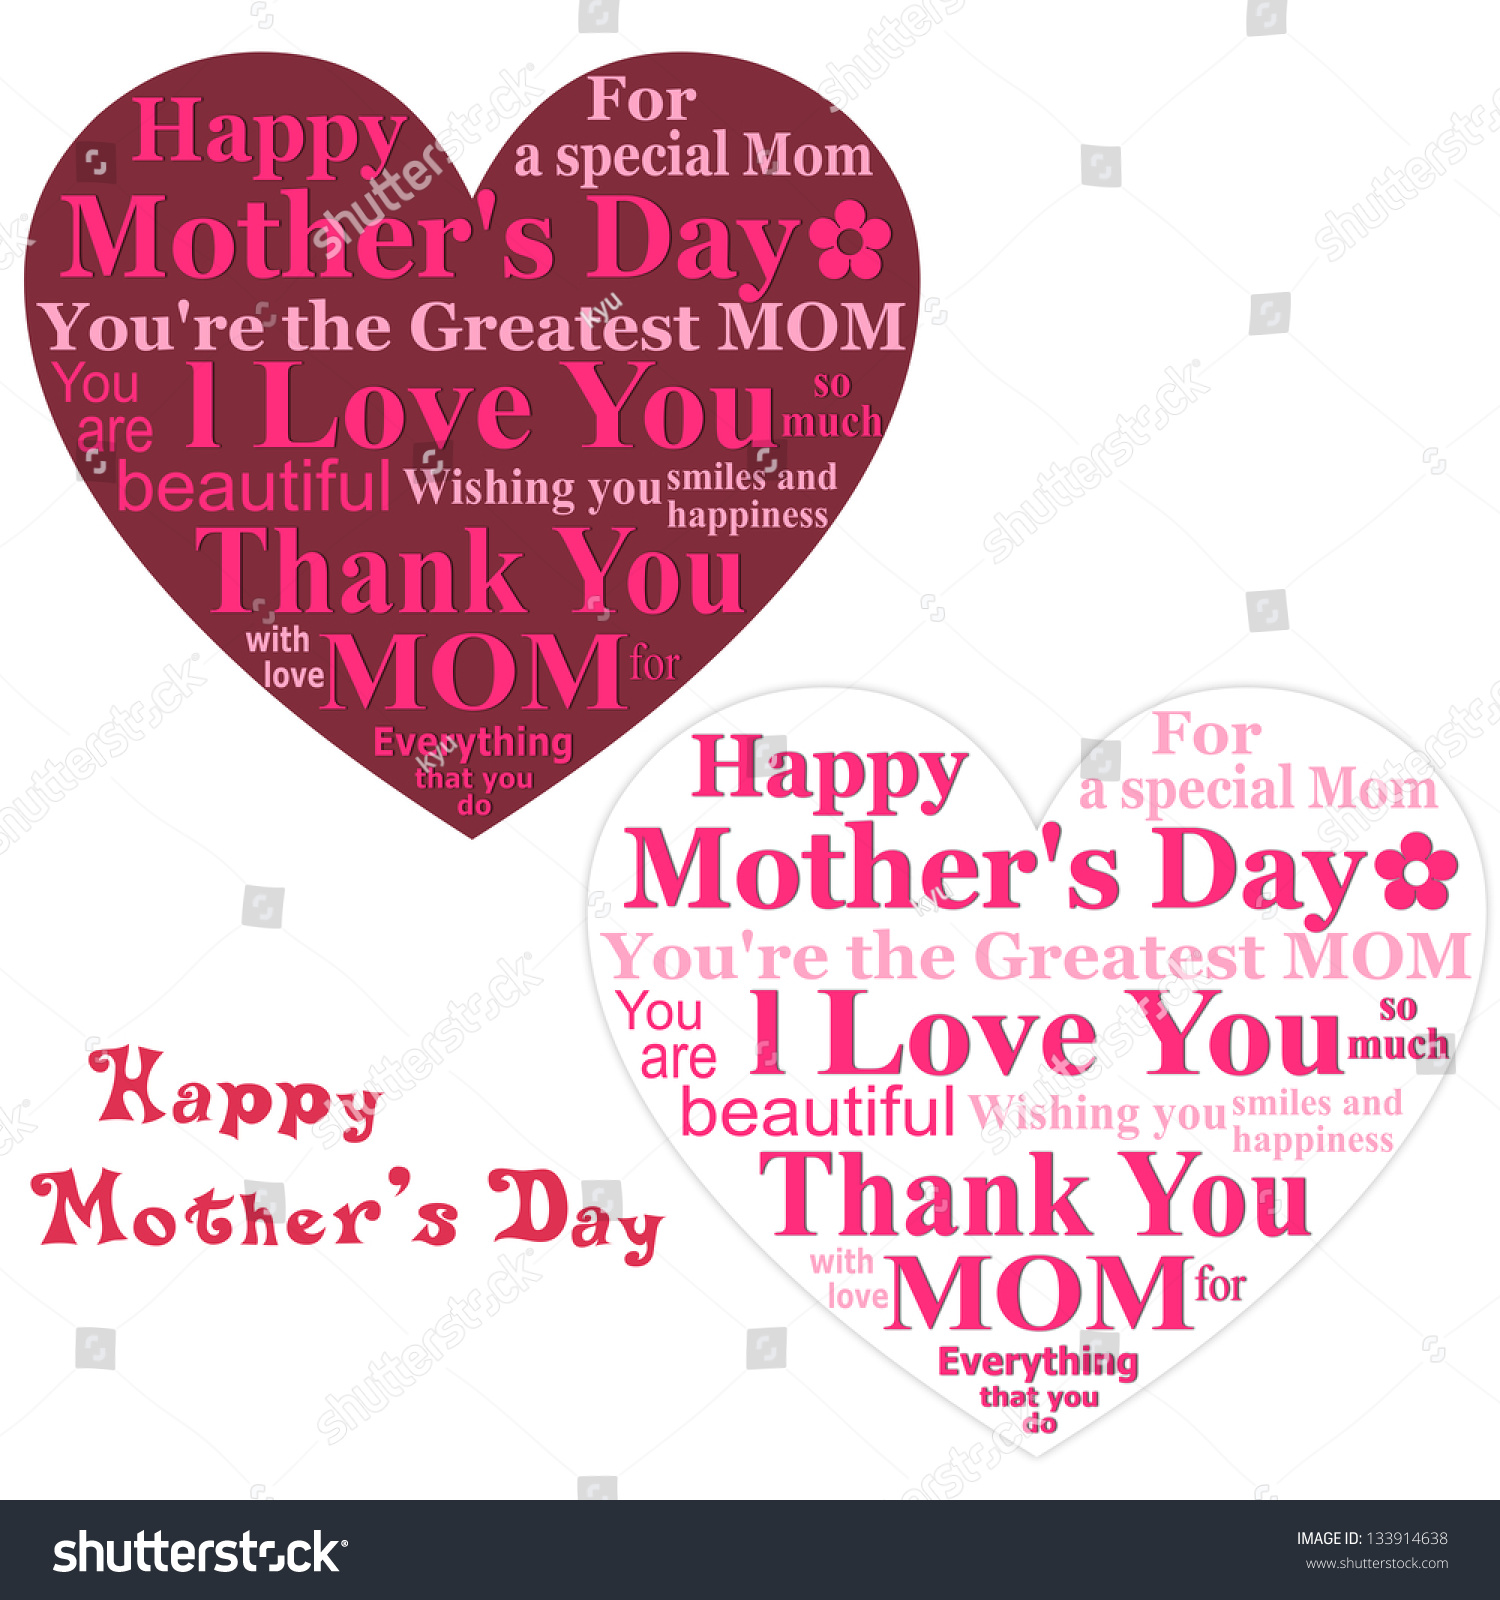 Happy mothers day card design on white background ez canvas id 133914638 maxwellsz